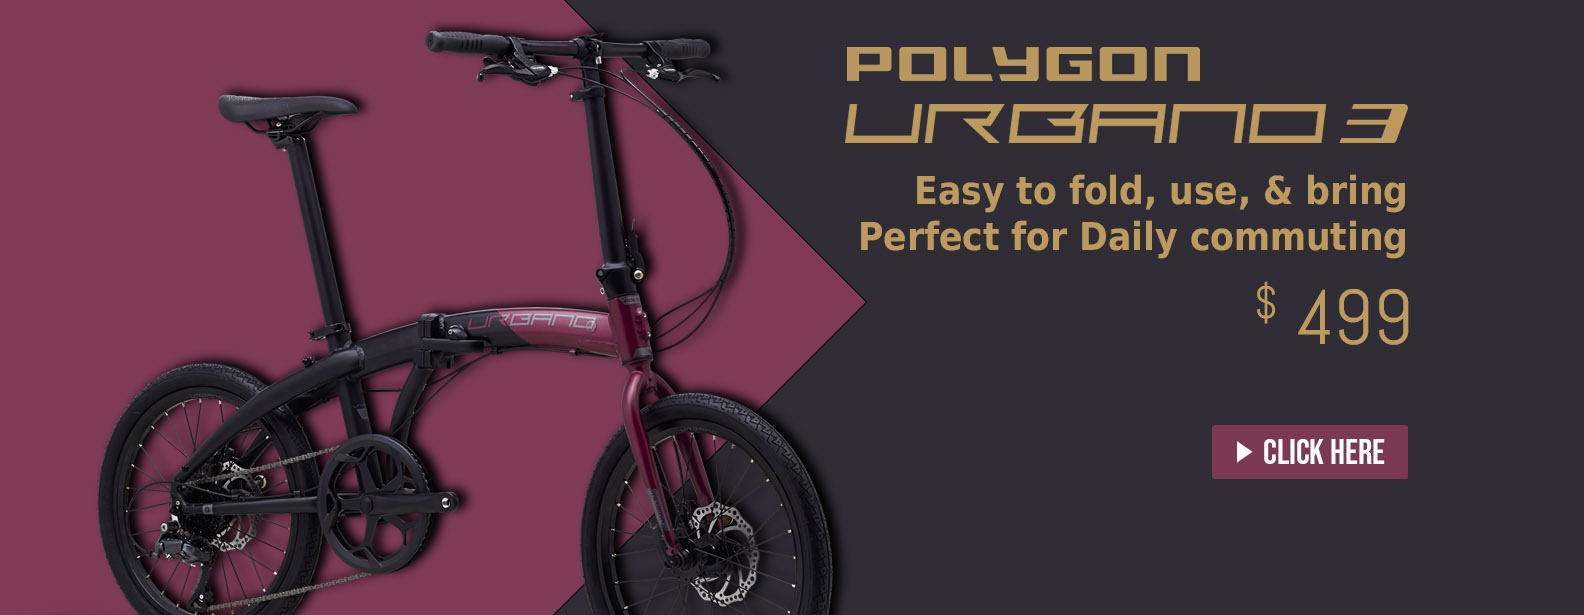 Buy Polygon Urbano 3 Folding Bike